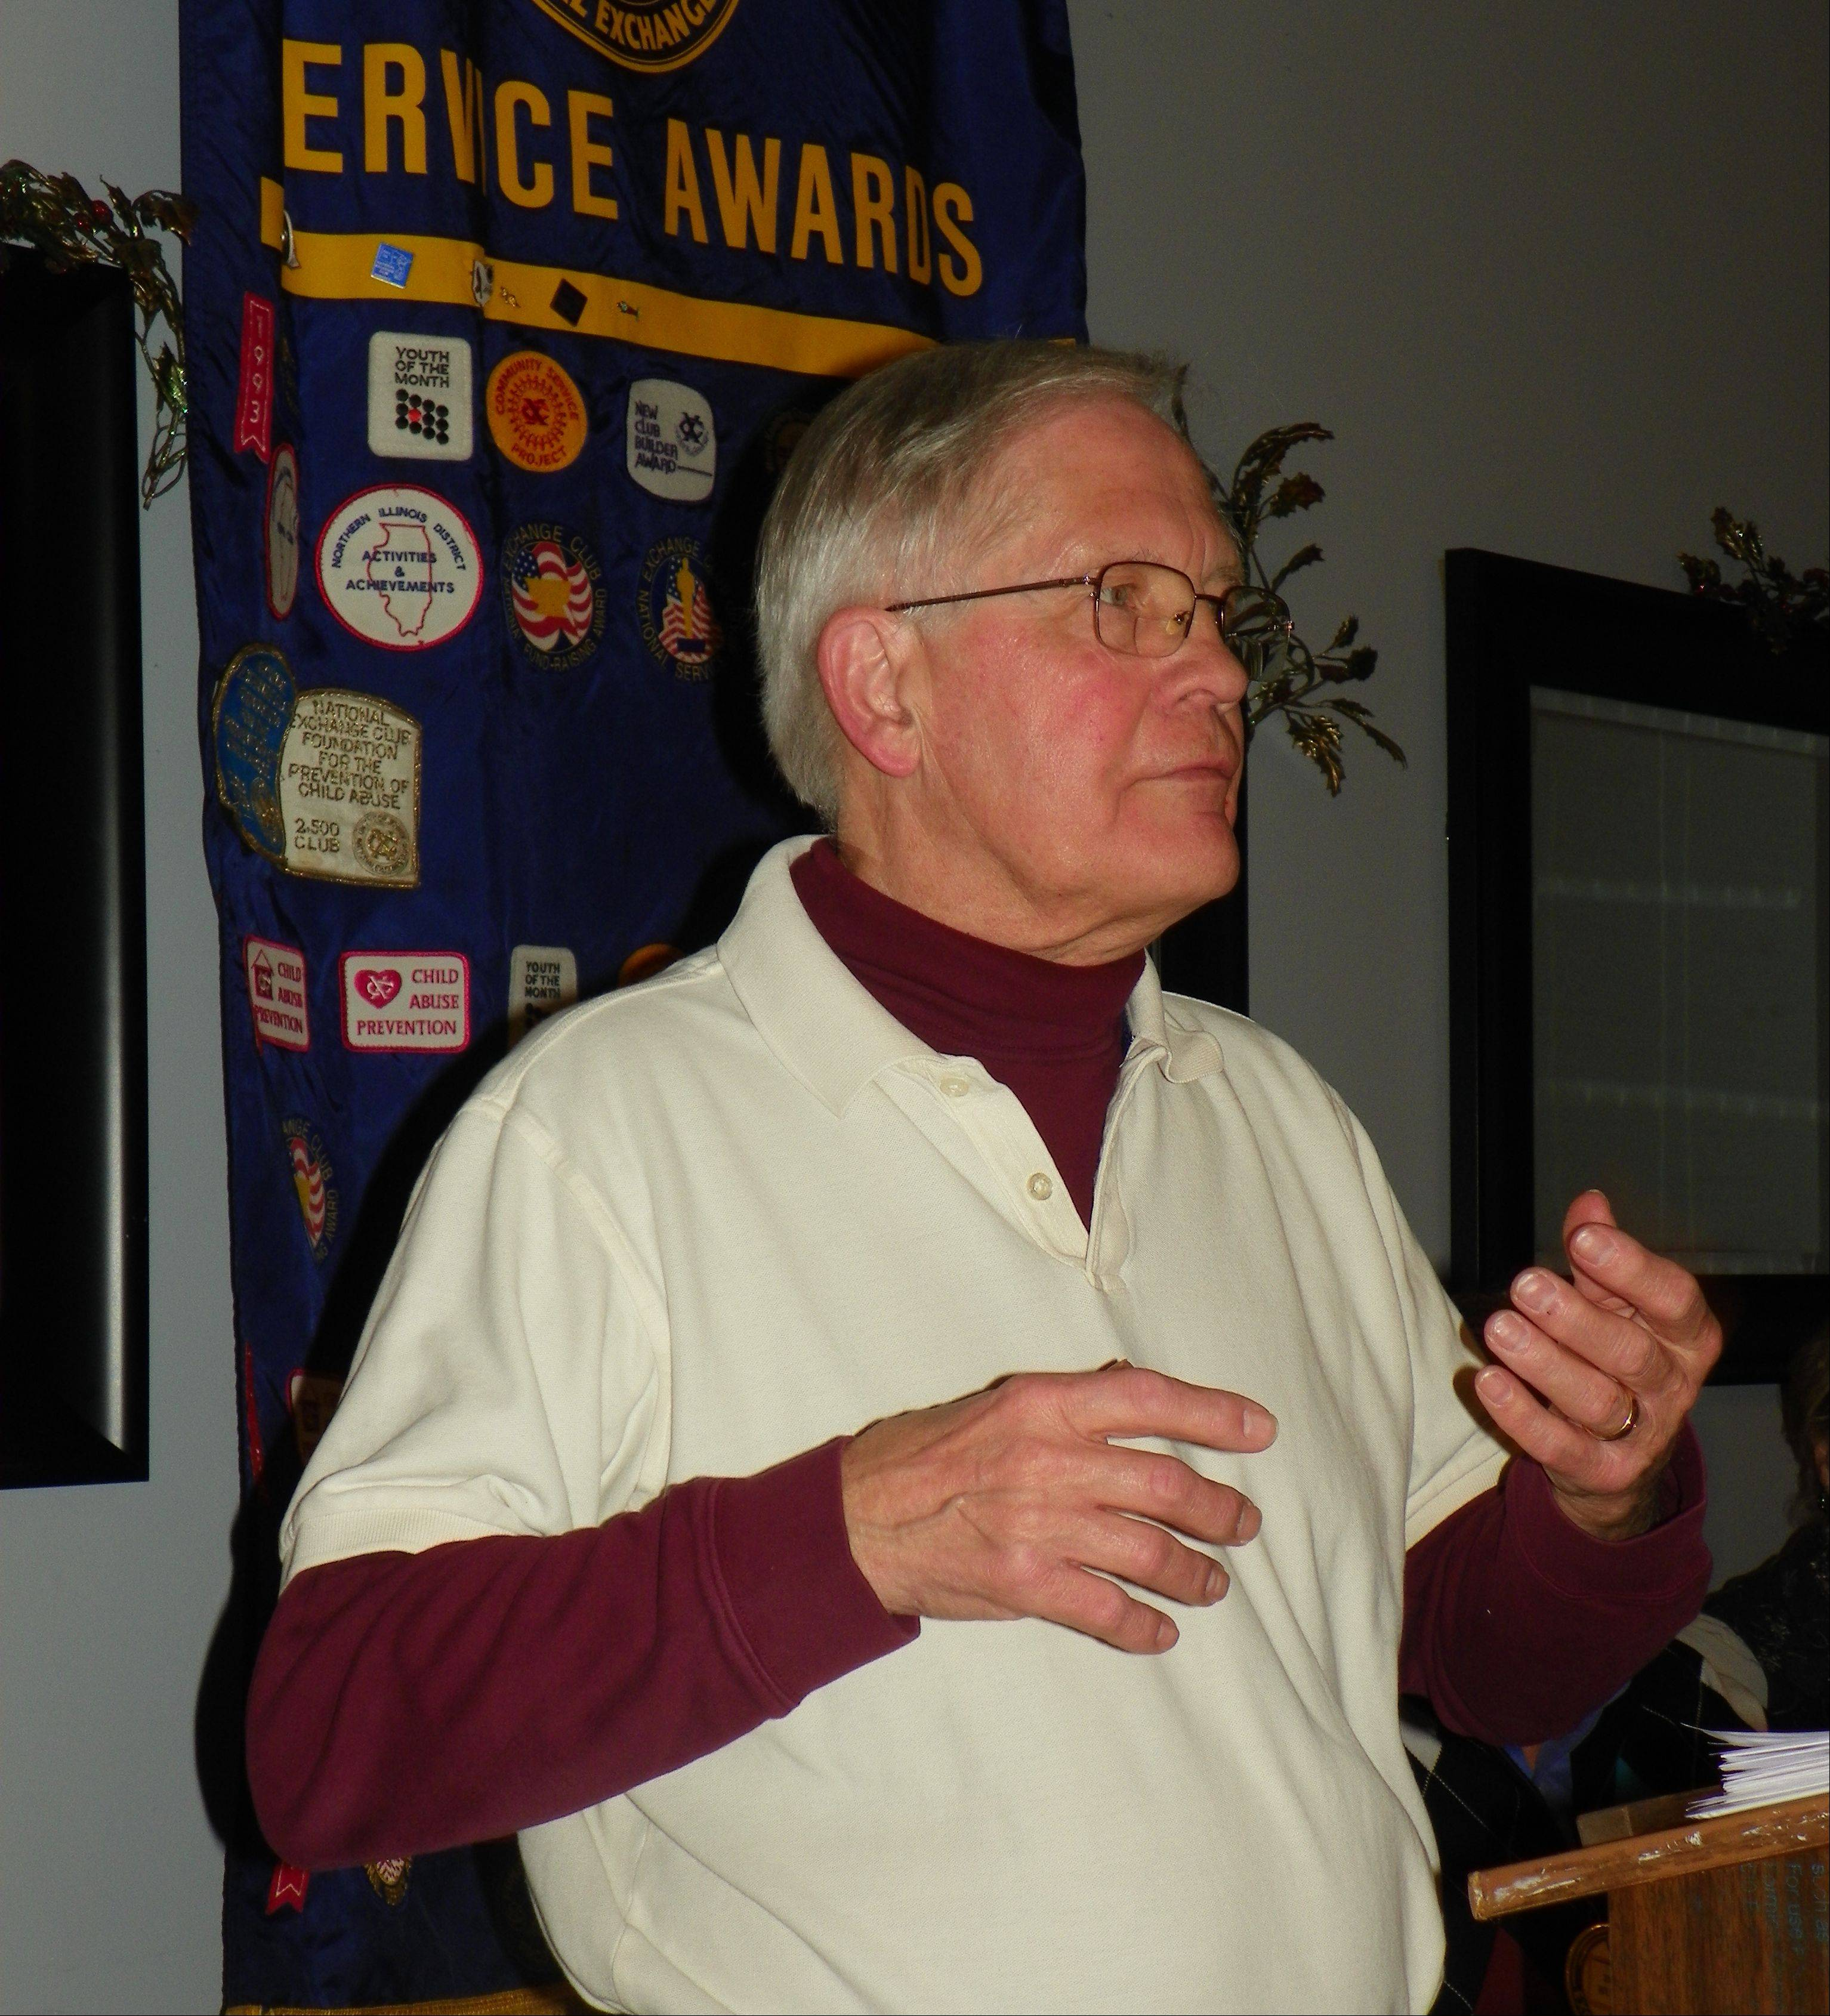 The Rev. William Beckmann of Immanuel Lutheran Church in Batavia shared his annual holiday message to the Tri-Cities Exchange Club last week.